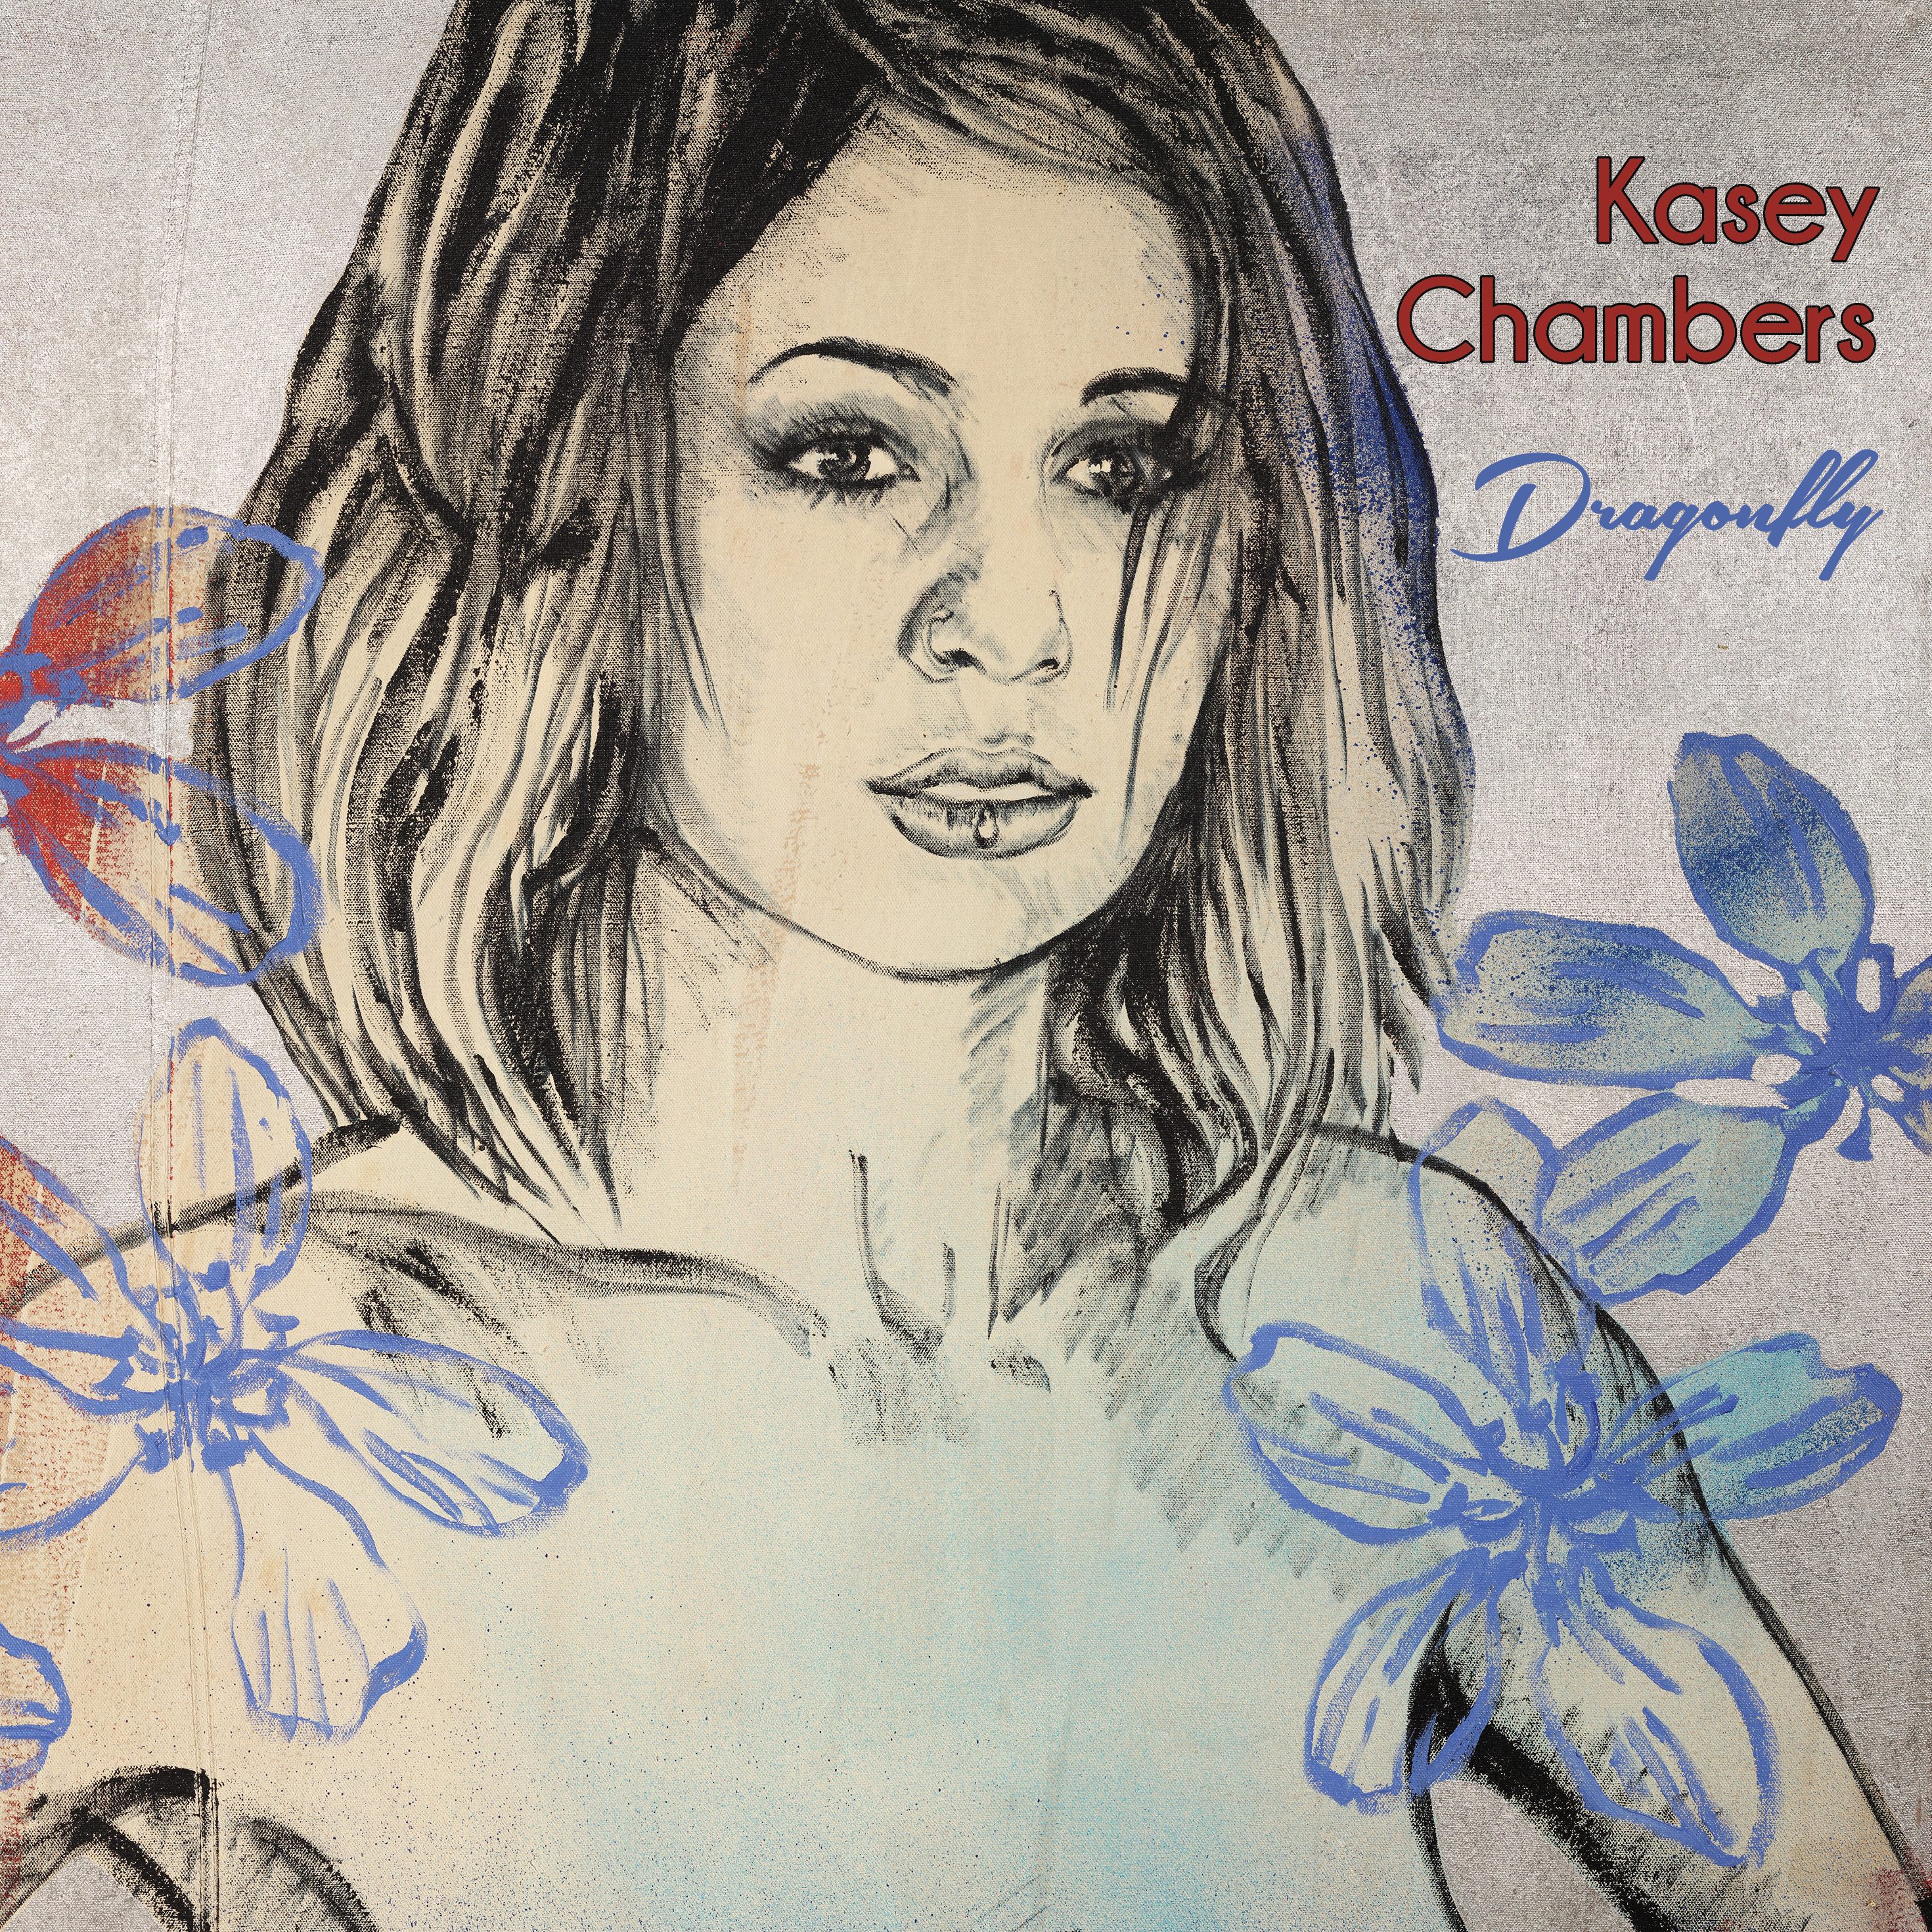 1610-kasey-chambers-dragonfly-cover-art-v4